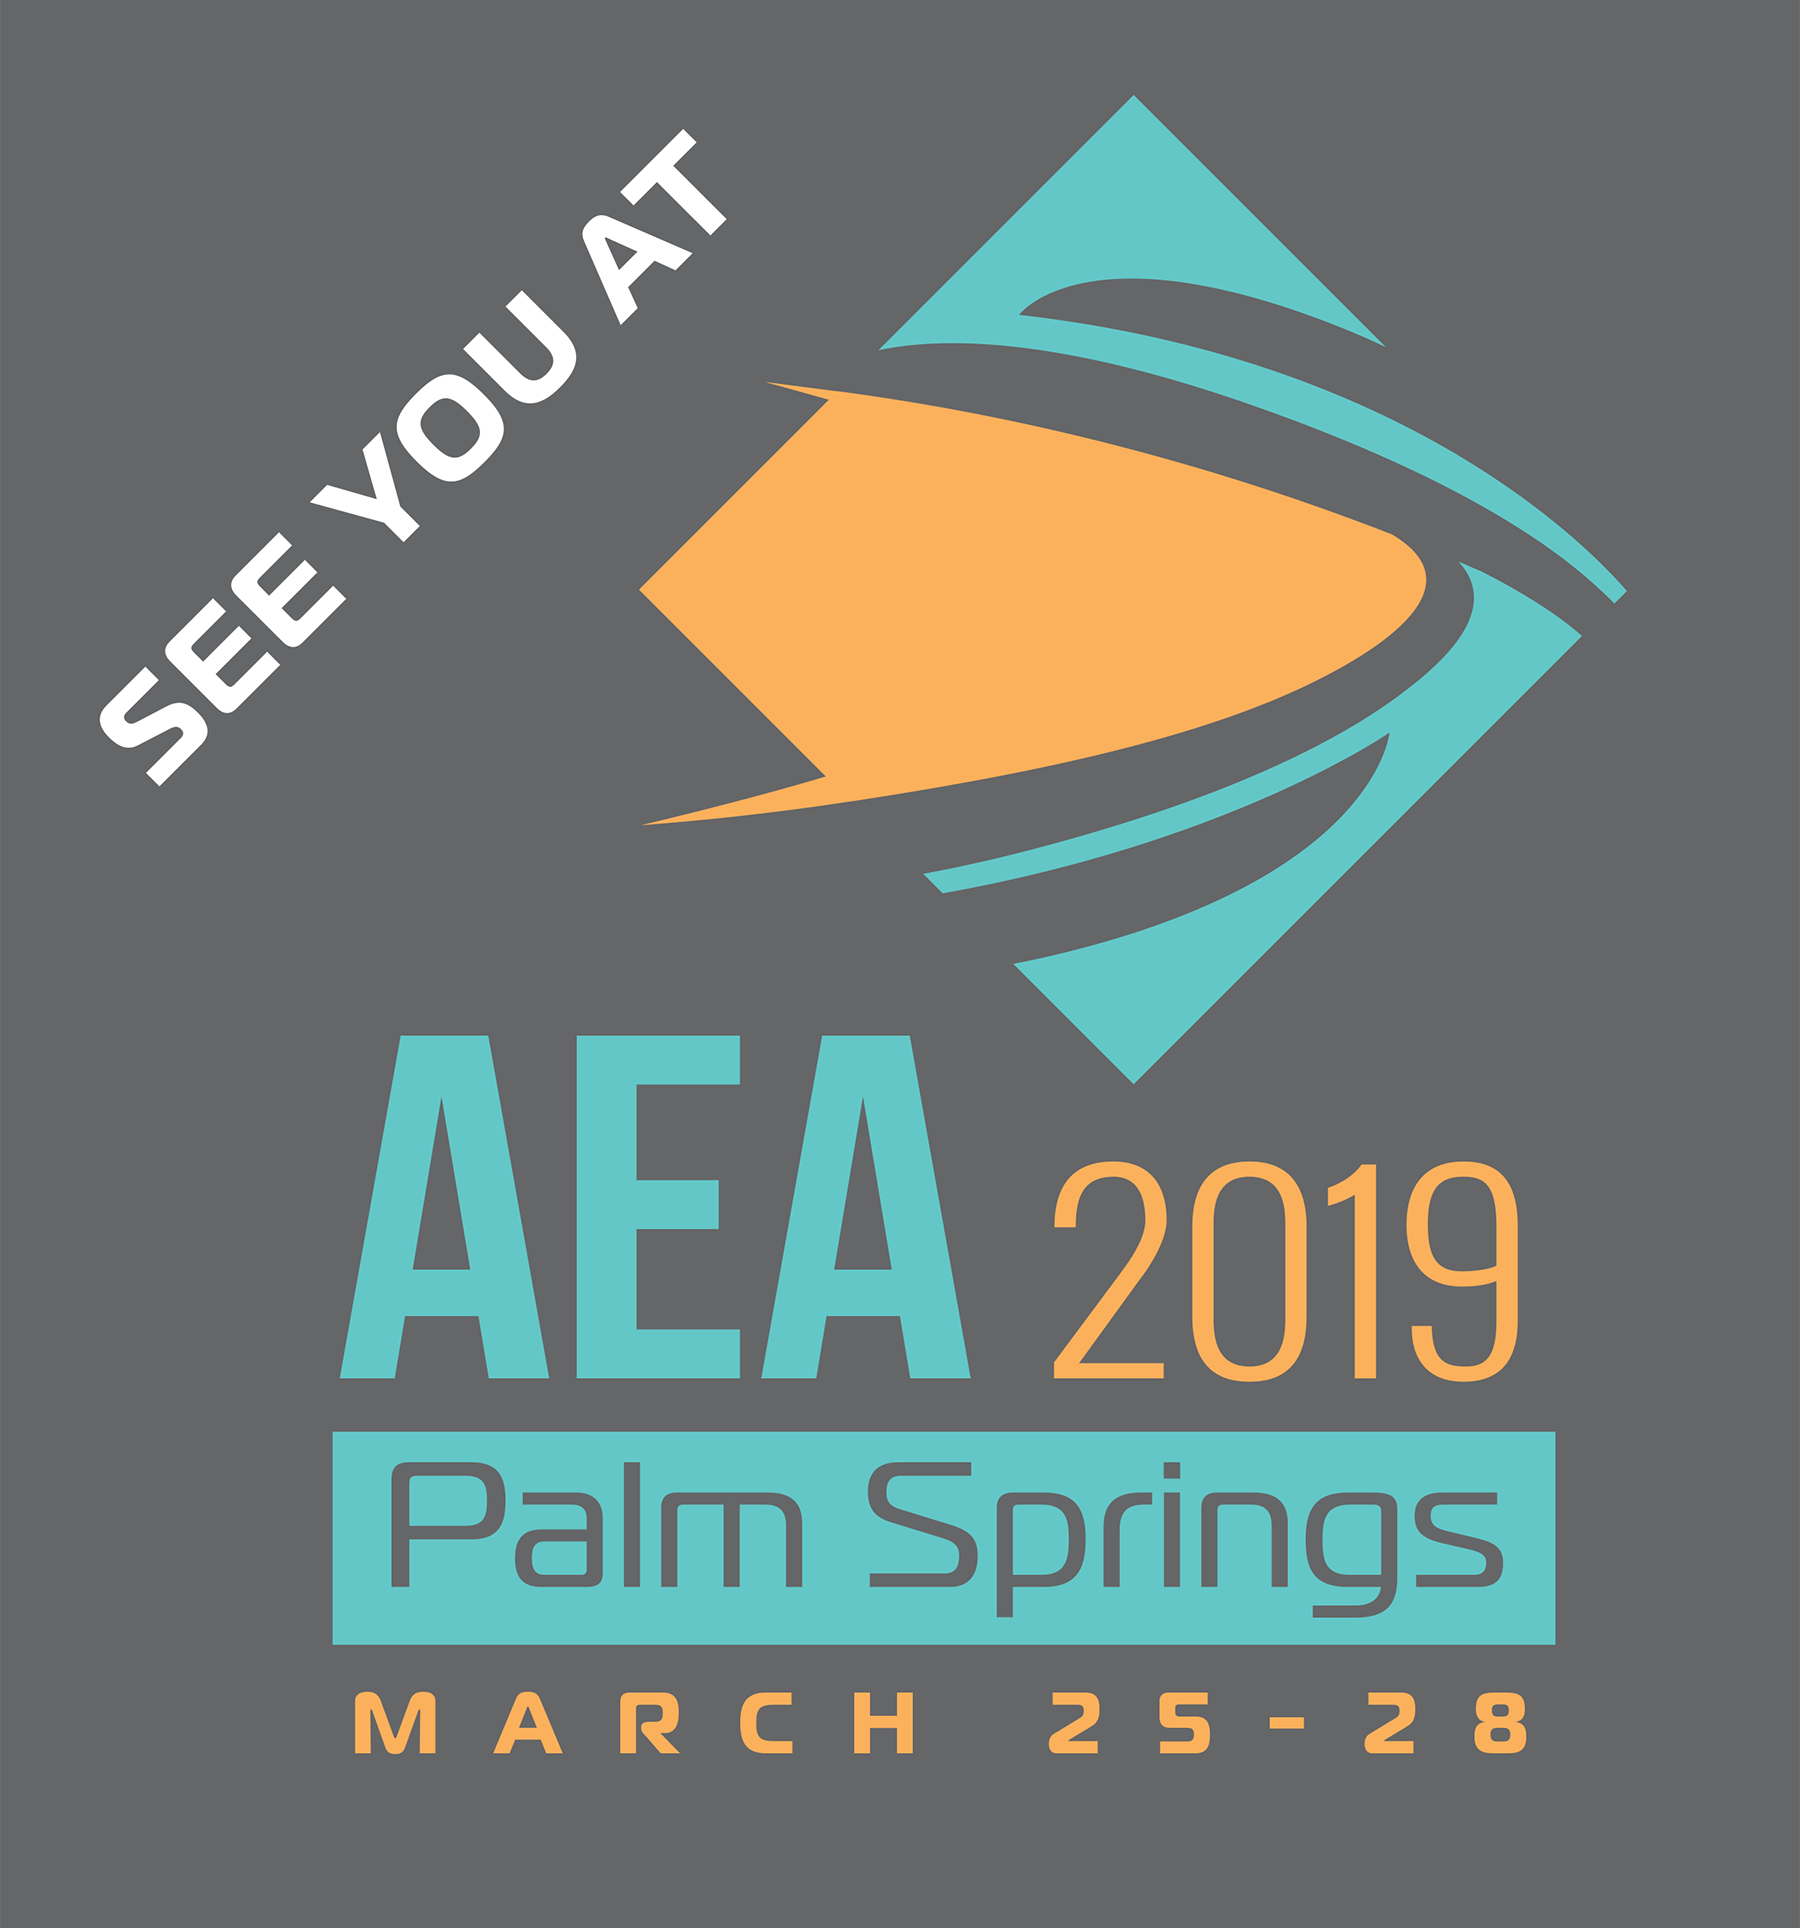 see-you-at-aea-palm-springs-grey-hr